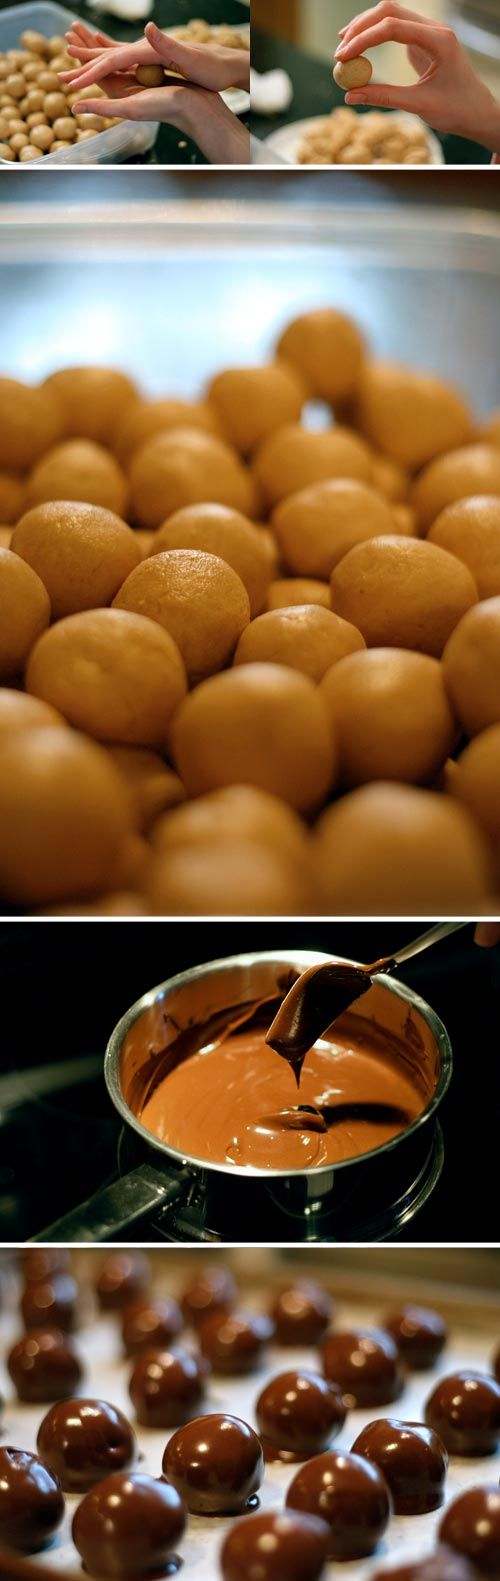 Peanut Butter Balls: Christmas Food, Peanut Butter Balls Recipe, Easy Buckeye, Peanut Butter Ball Recipe, Peanutbutter Recipe, Chocolate Peanut Butter Ball